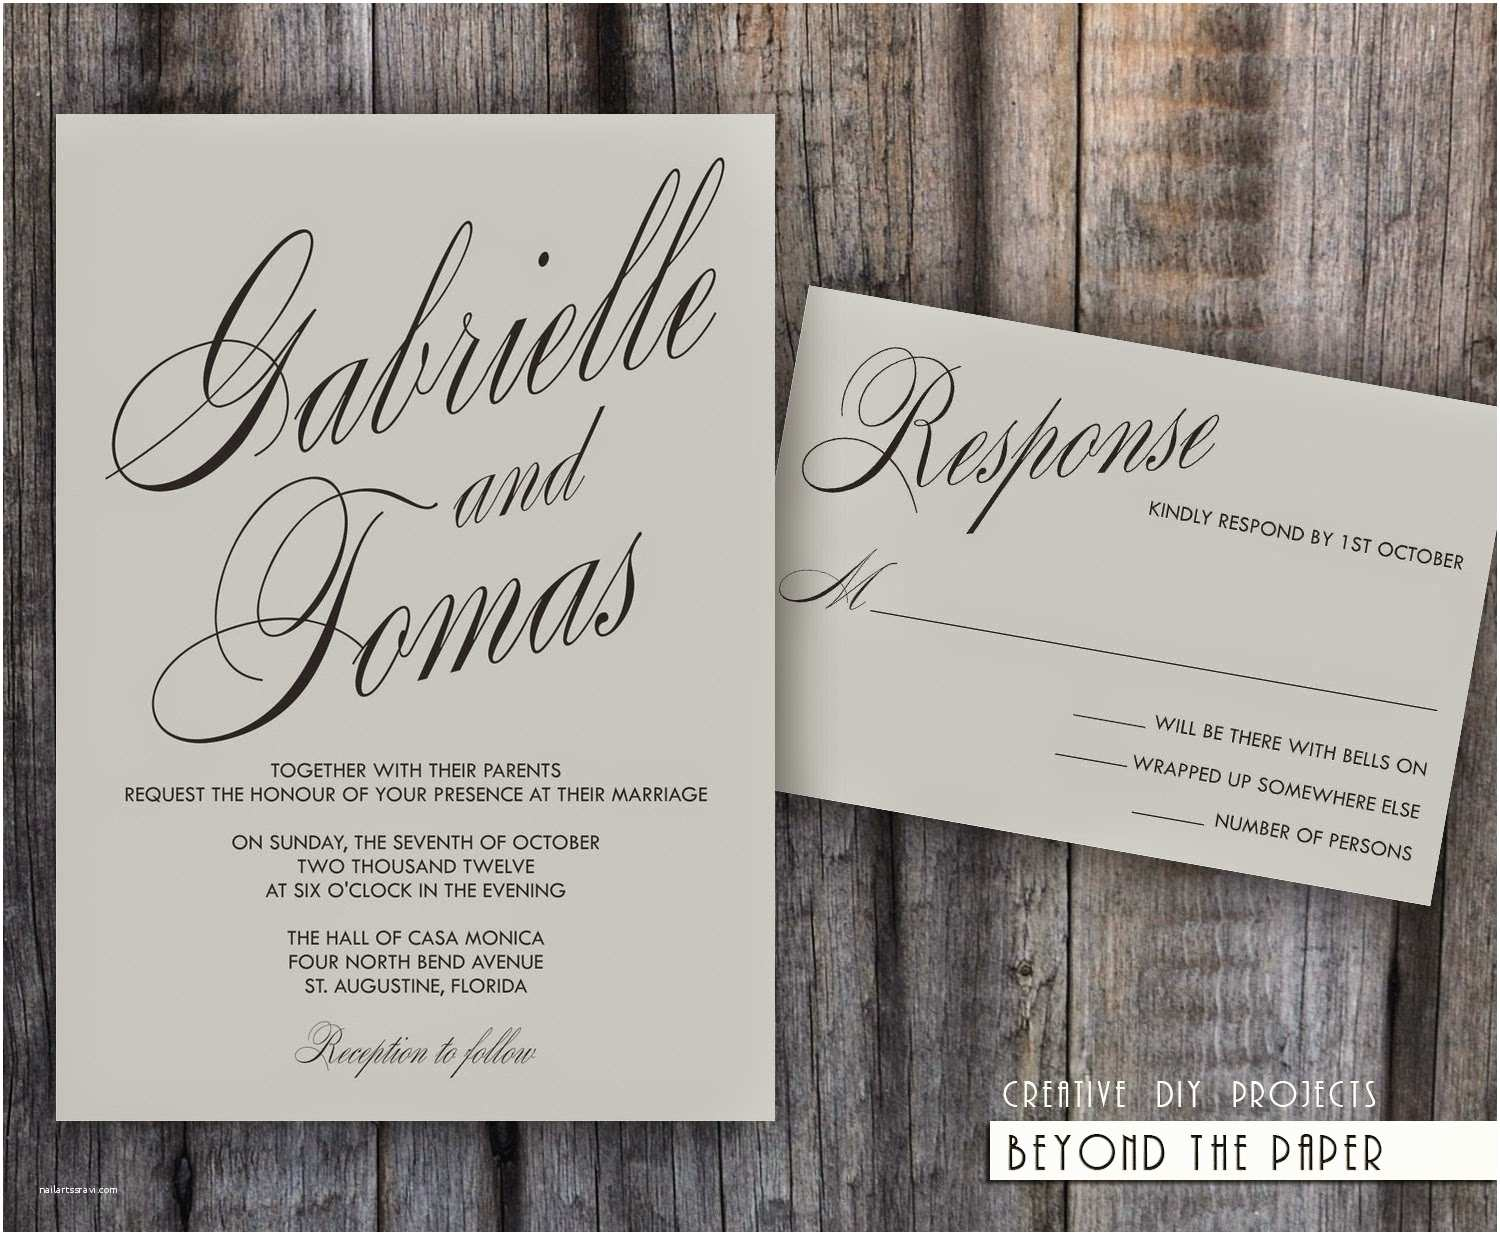 Best Place for Wedding Invitations Cheap Wedding Invitations 50 Of the Best Wedding